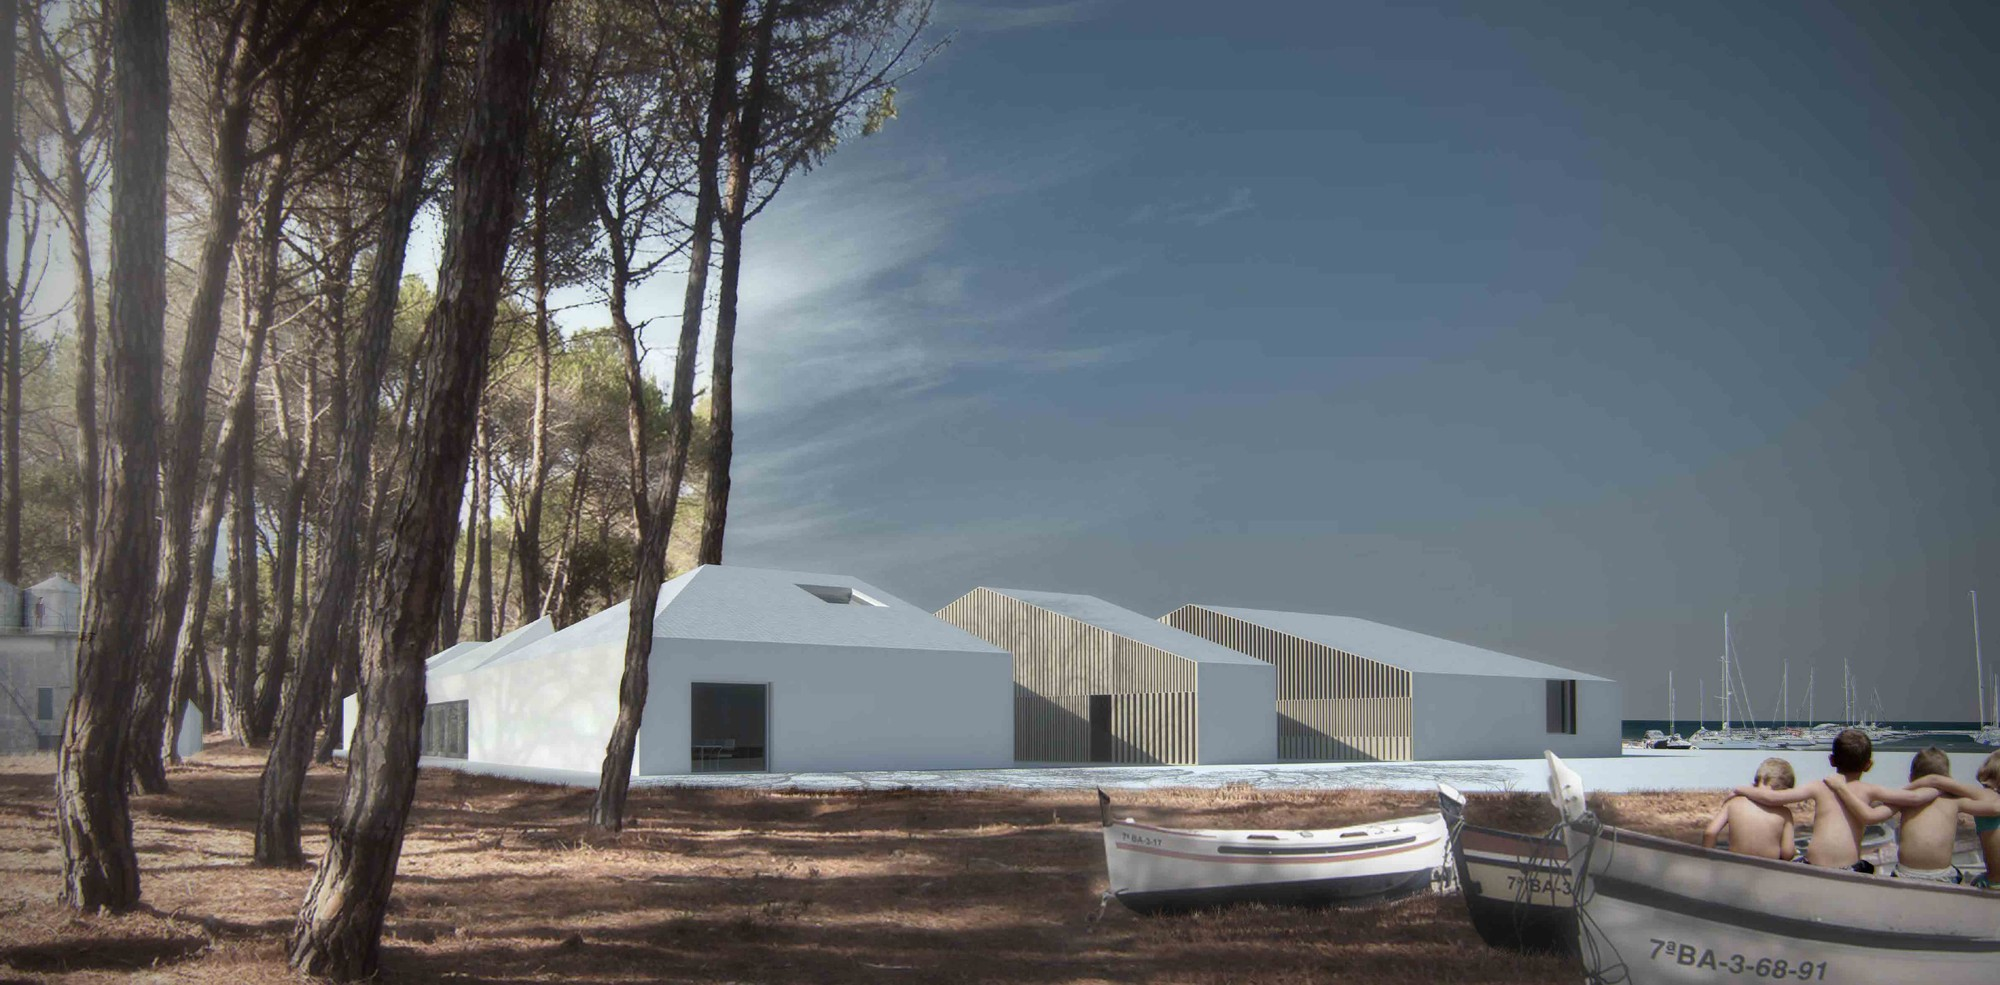 Península of Sancti-Petri Winning Proposal / BAKPAK Architects, Courtesy of BAKPAK Architects